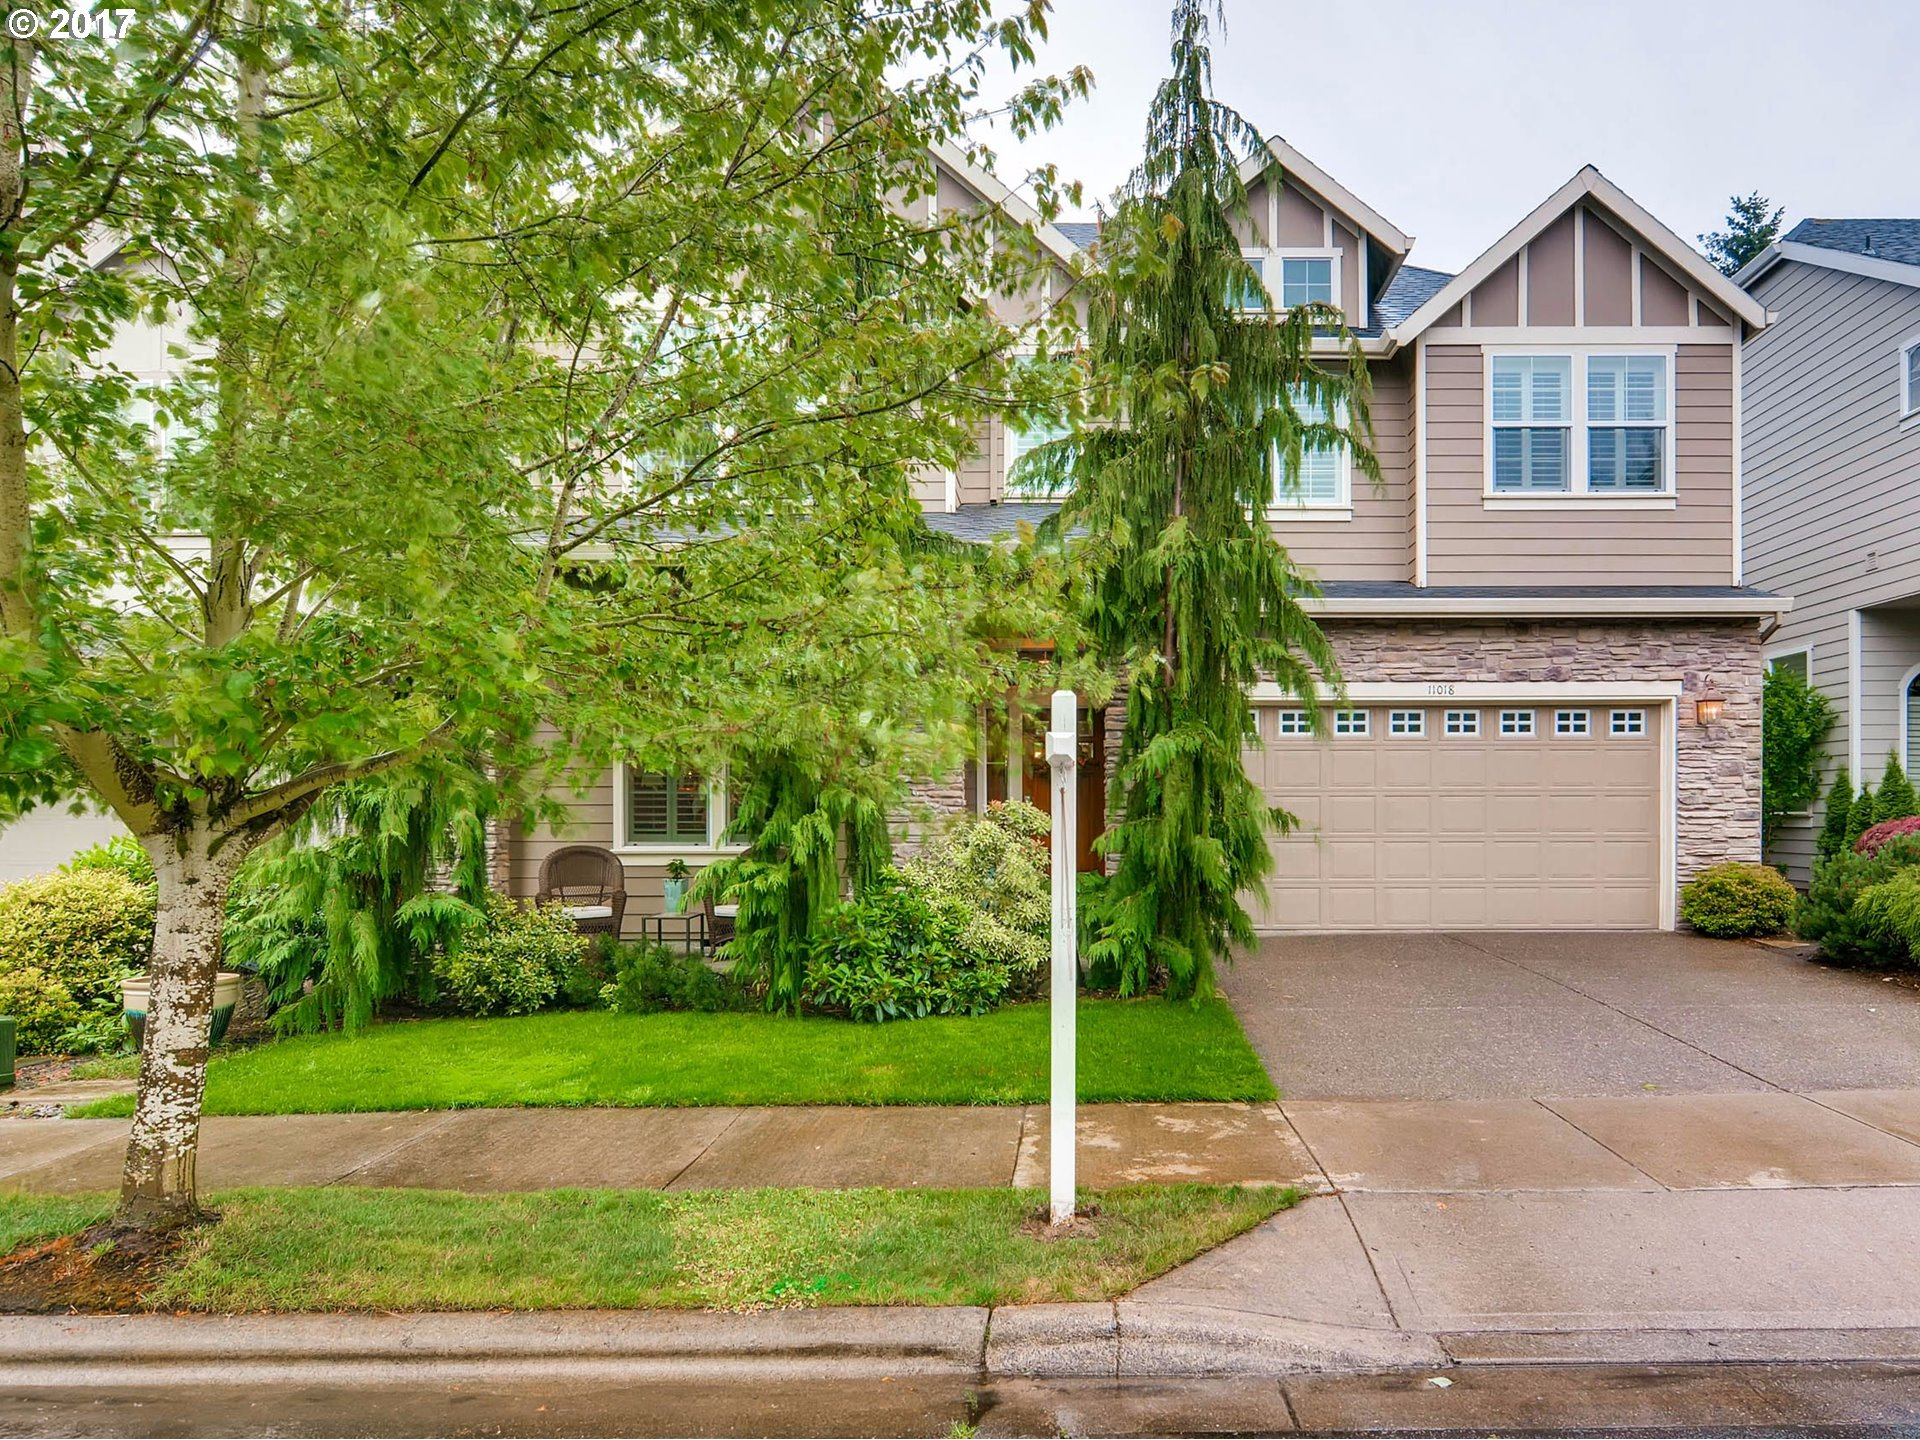 3177 sq. ft 4 bedrooms 2 bathrooms  House For Sale,Portland, OR